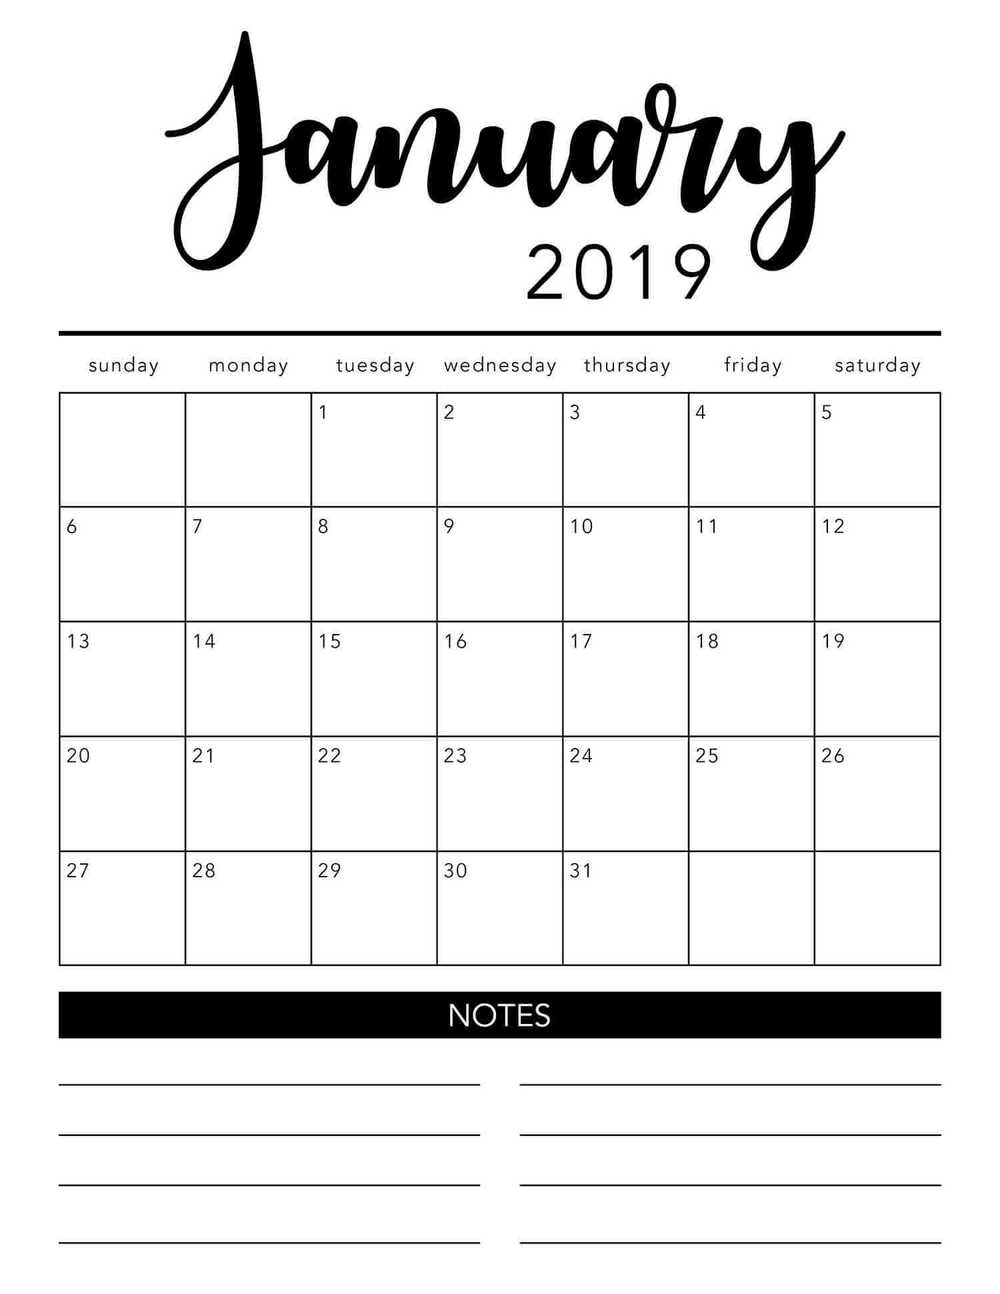 Free 2019 Printable Calendar Template (2 Colors!) - I Heart Naptime in Blank Calendar Month By Month